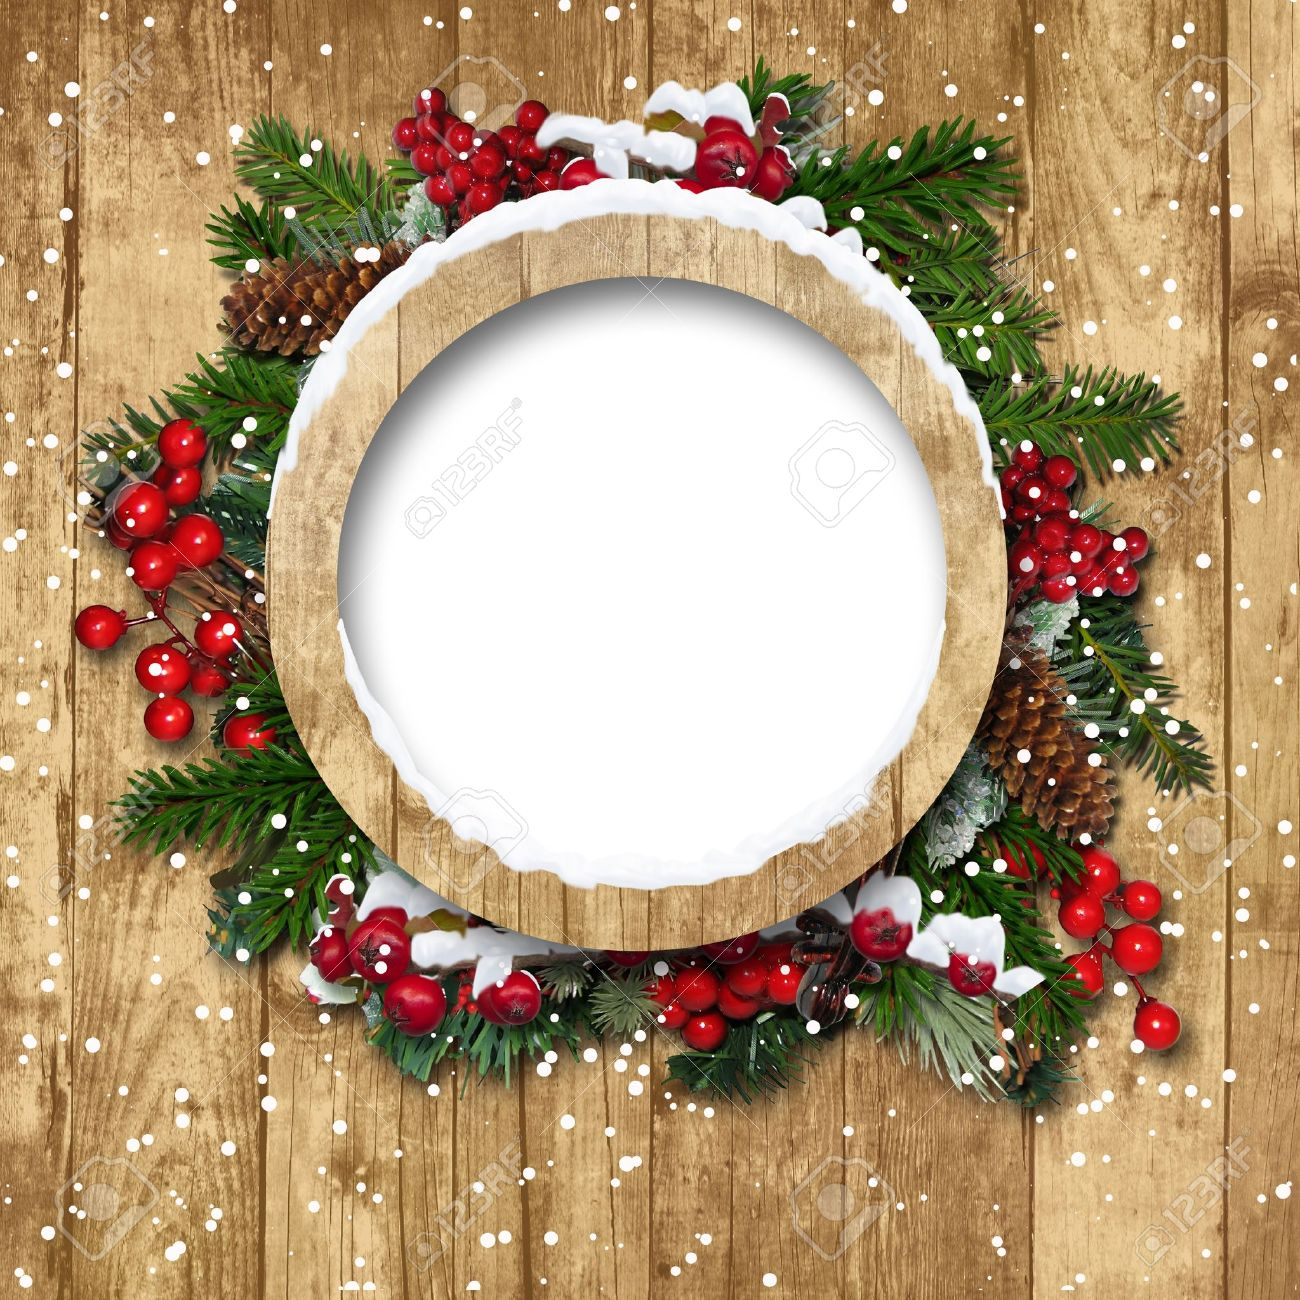 Vintage Christmas frame with decorations on a wooden background Stock Photo - 16674807